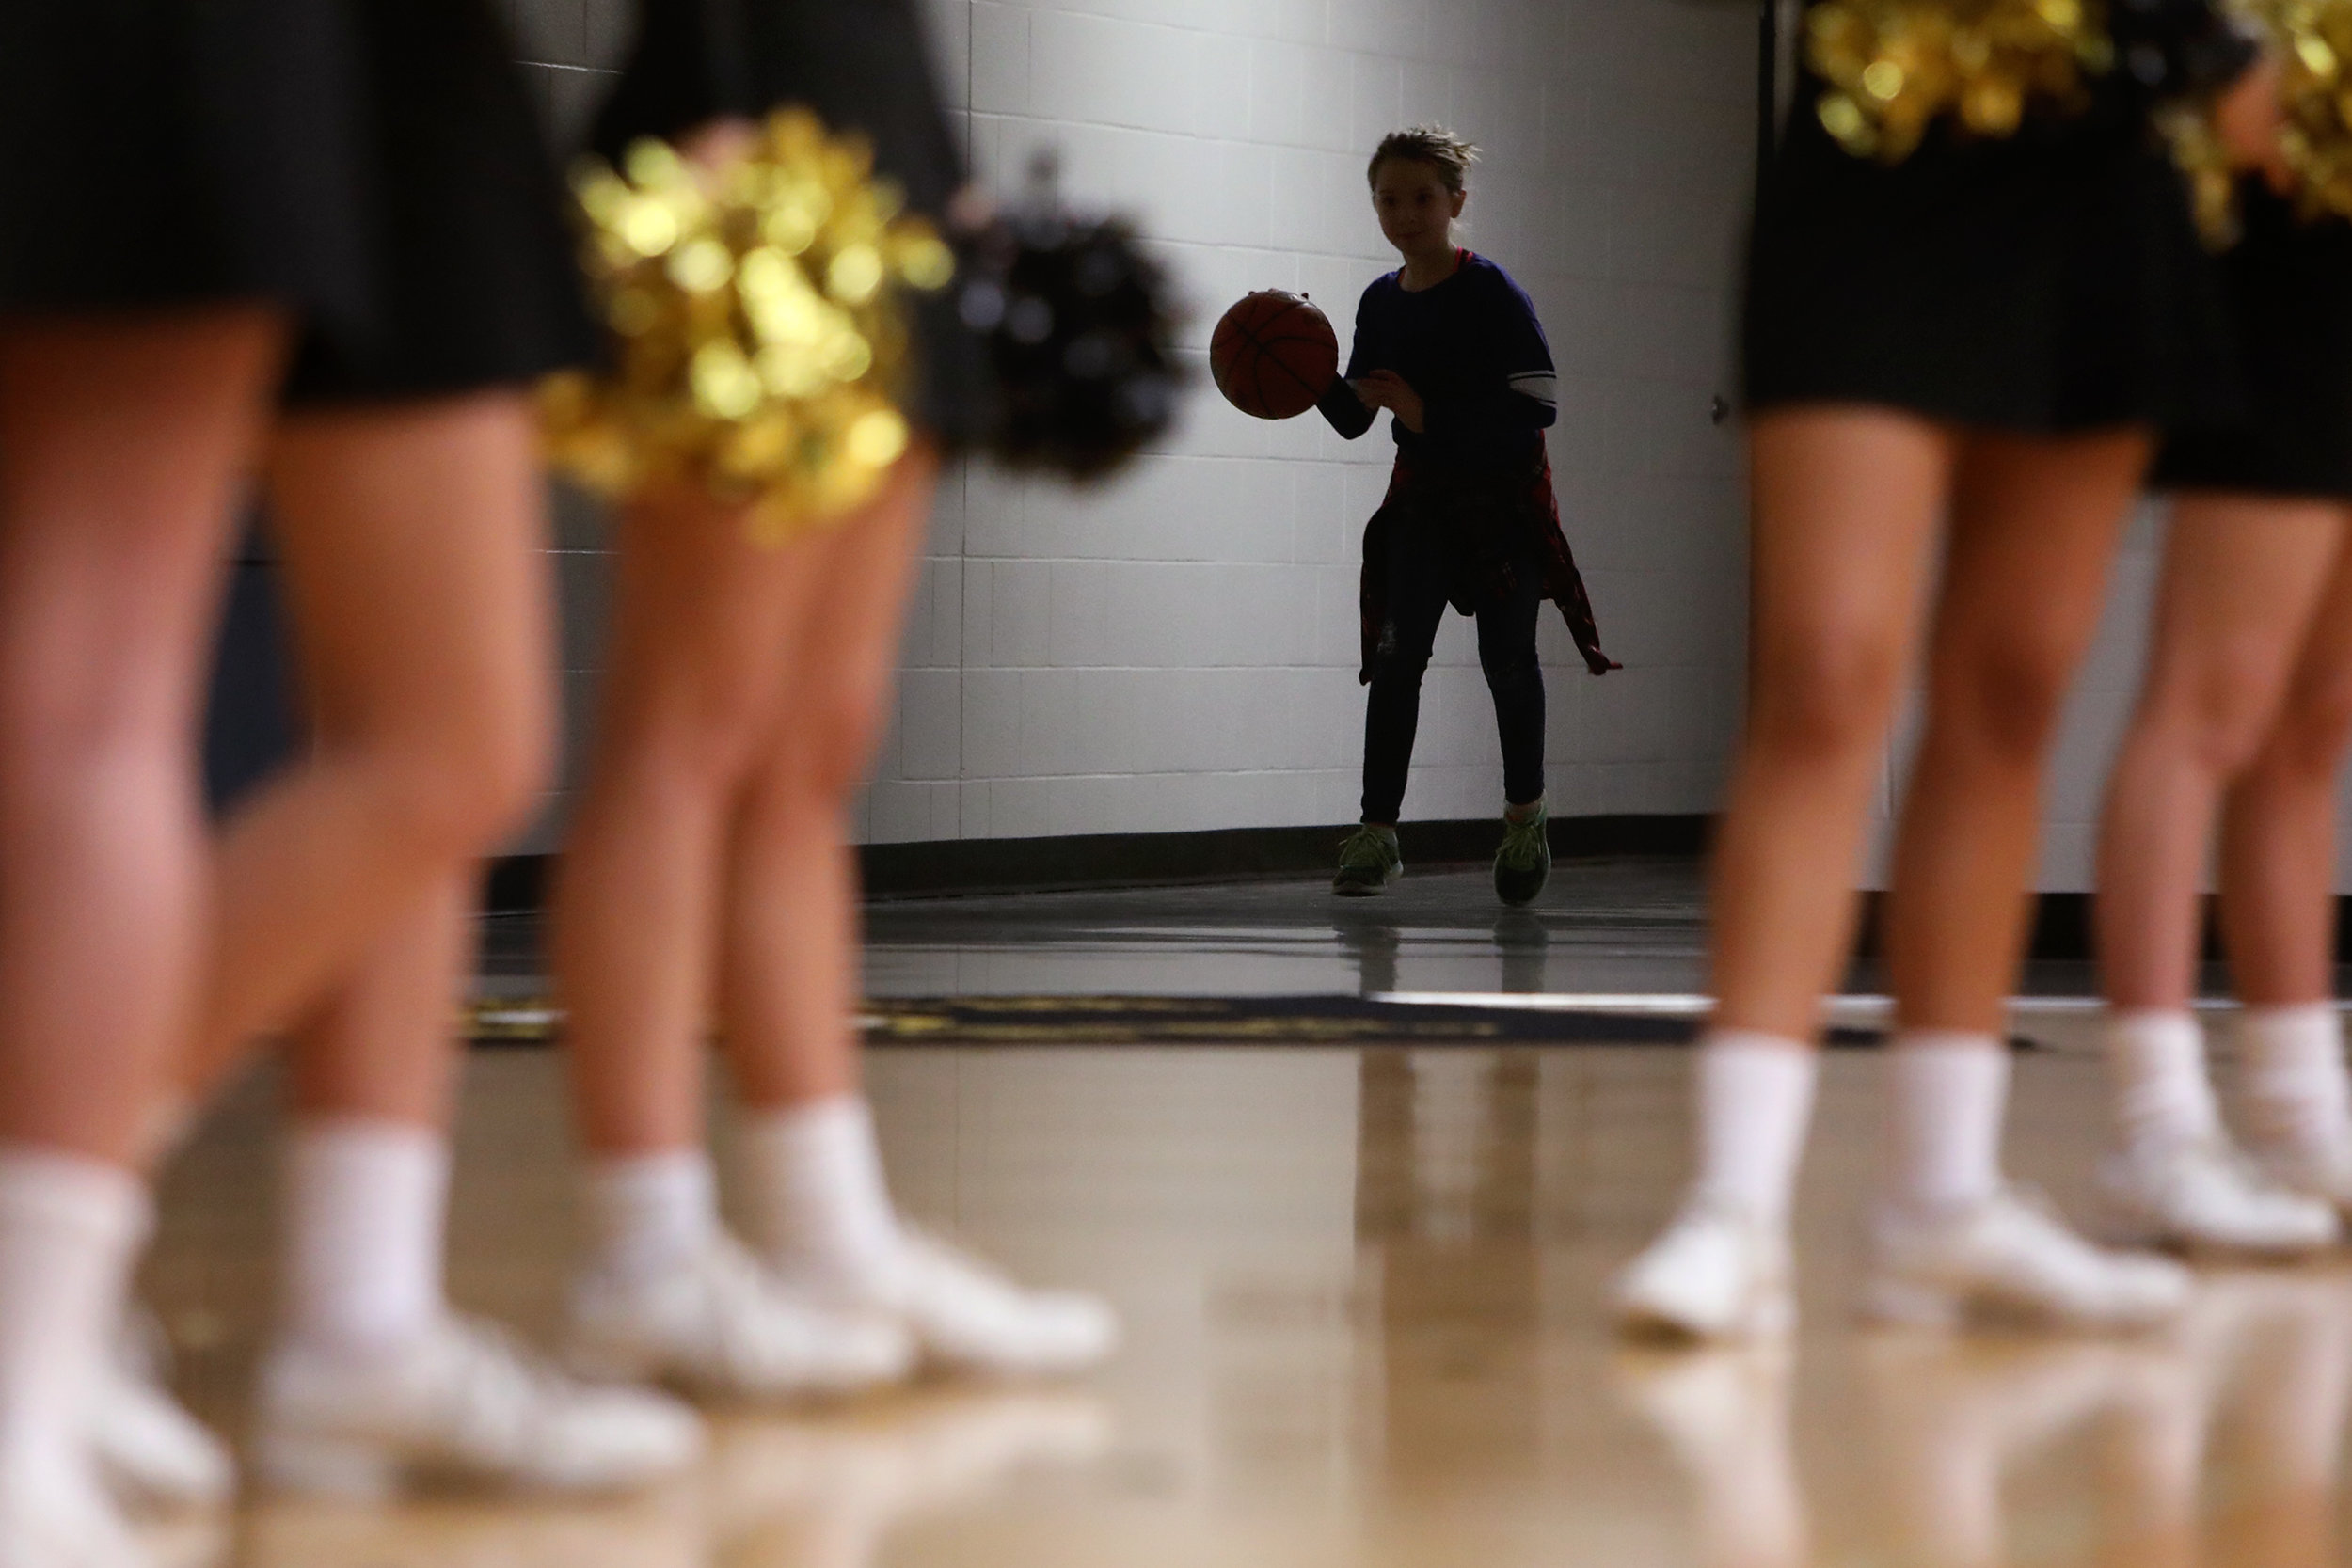 Jaida Kendall of Jasper, 10, played in the hallway as the Wildcats faced the Princeton Tigers at Jasper High School in Jasper on Tuesday. Kendall is the daughter of Jasper assistant coach Phil Kendall.